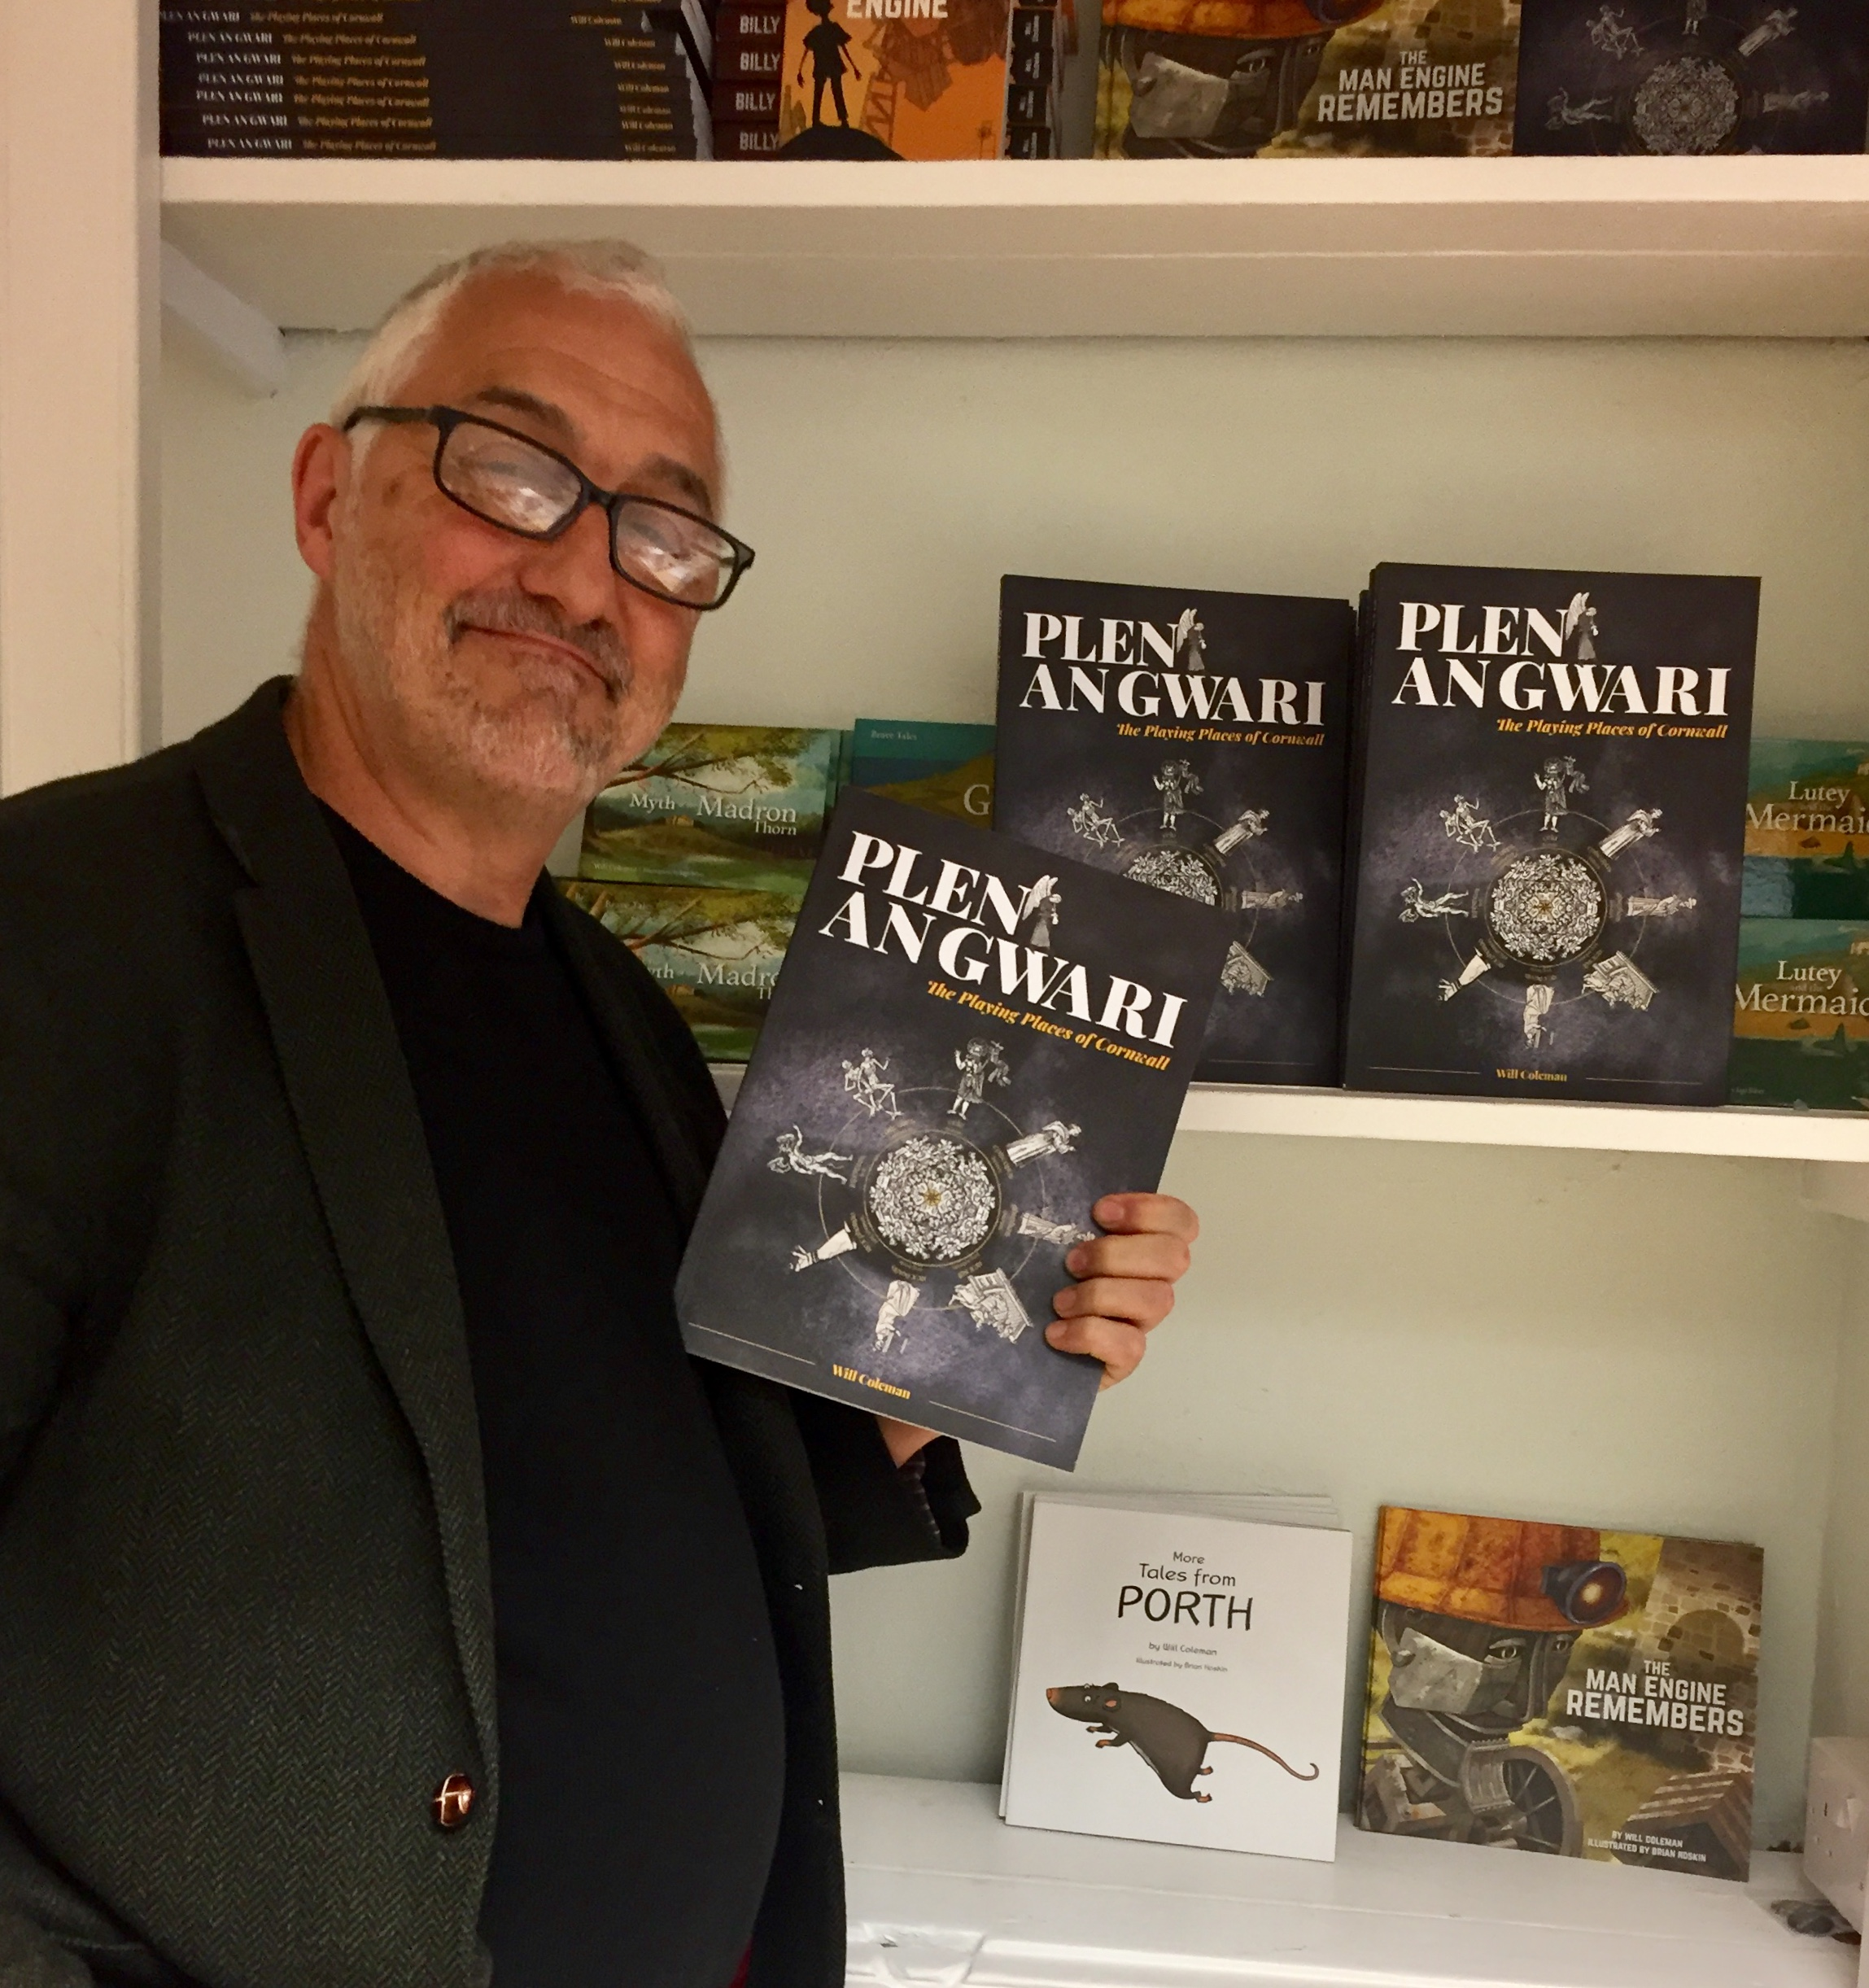 Will Coleman with the second edition of his book Plen an Gwari: The Playing Places of Cornwall